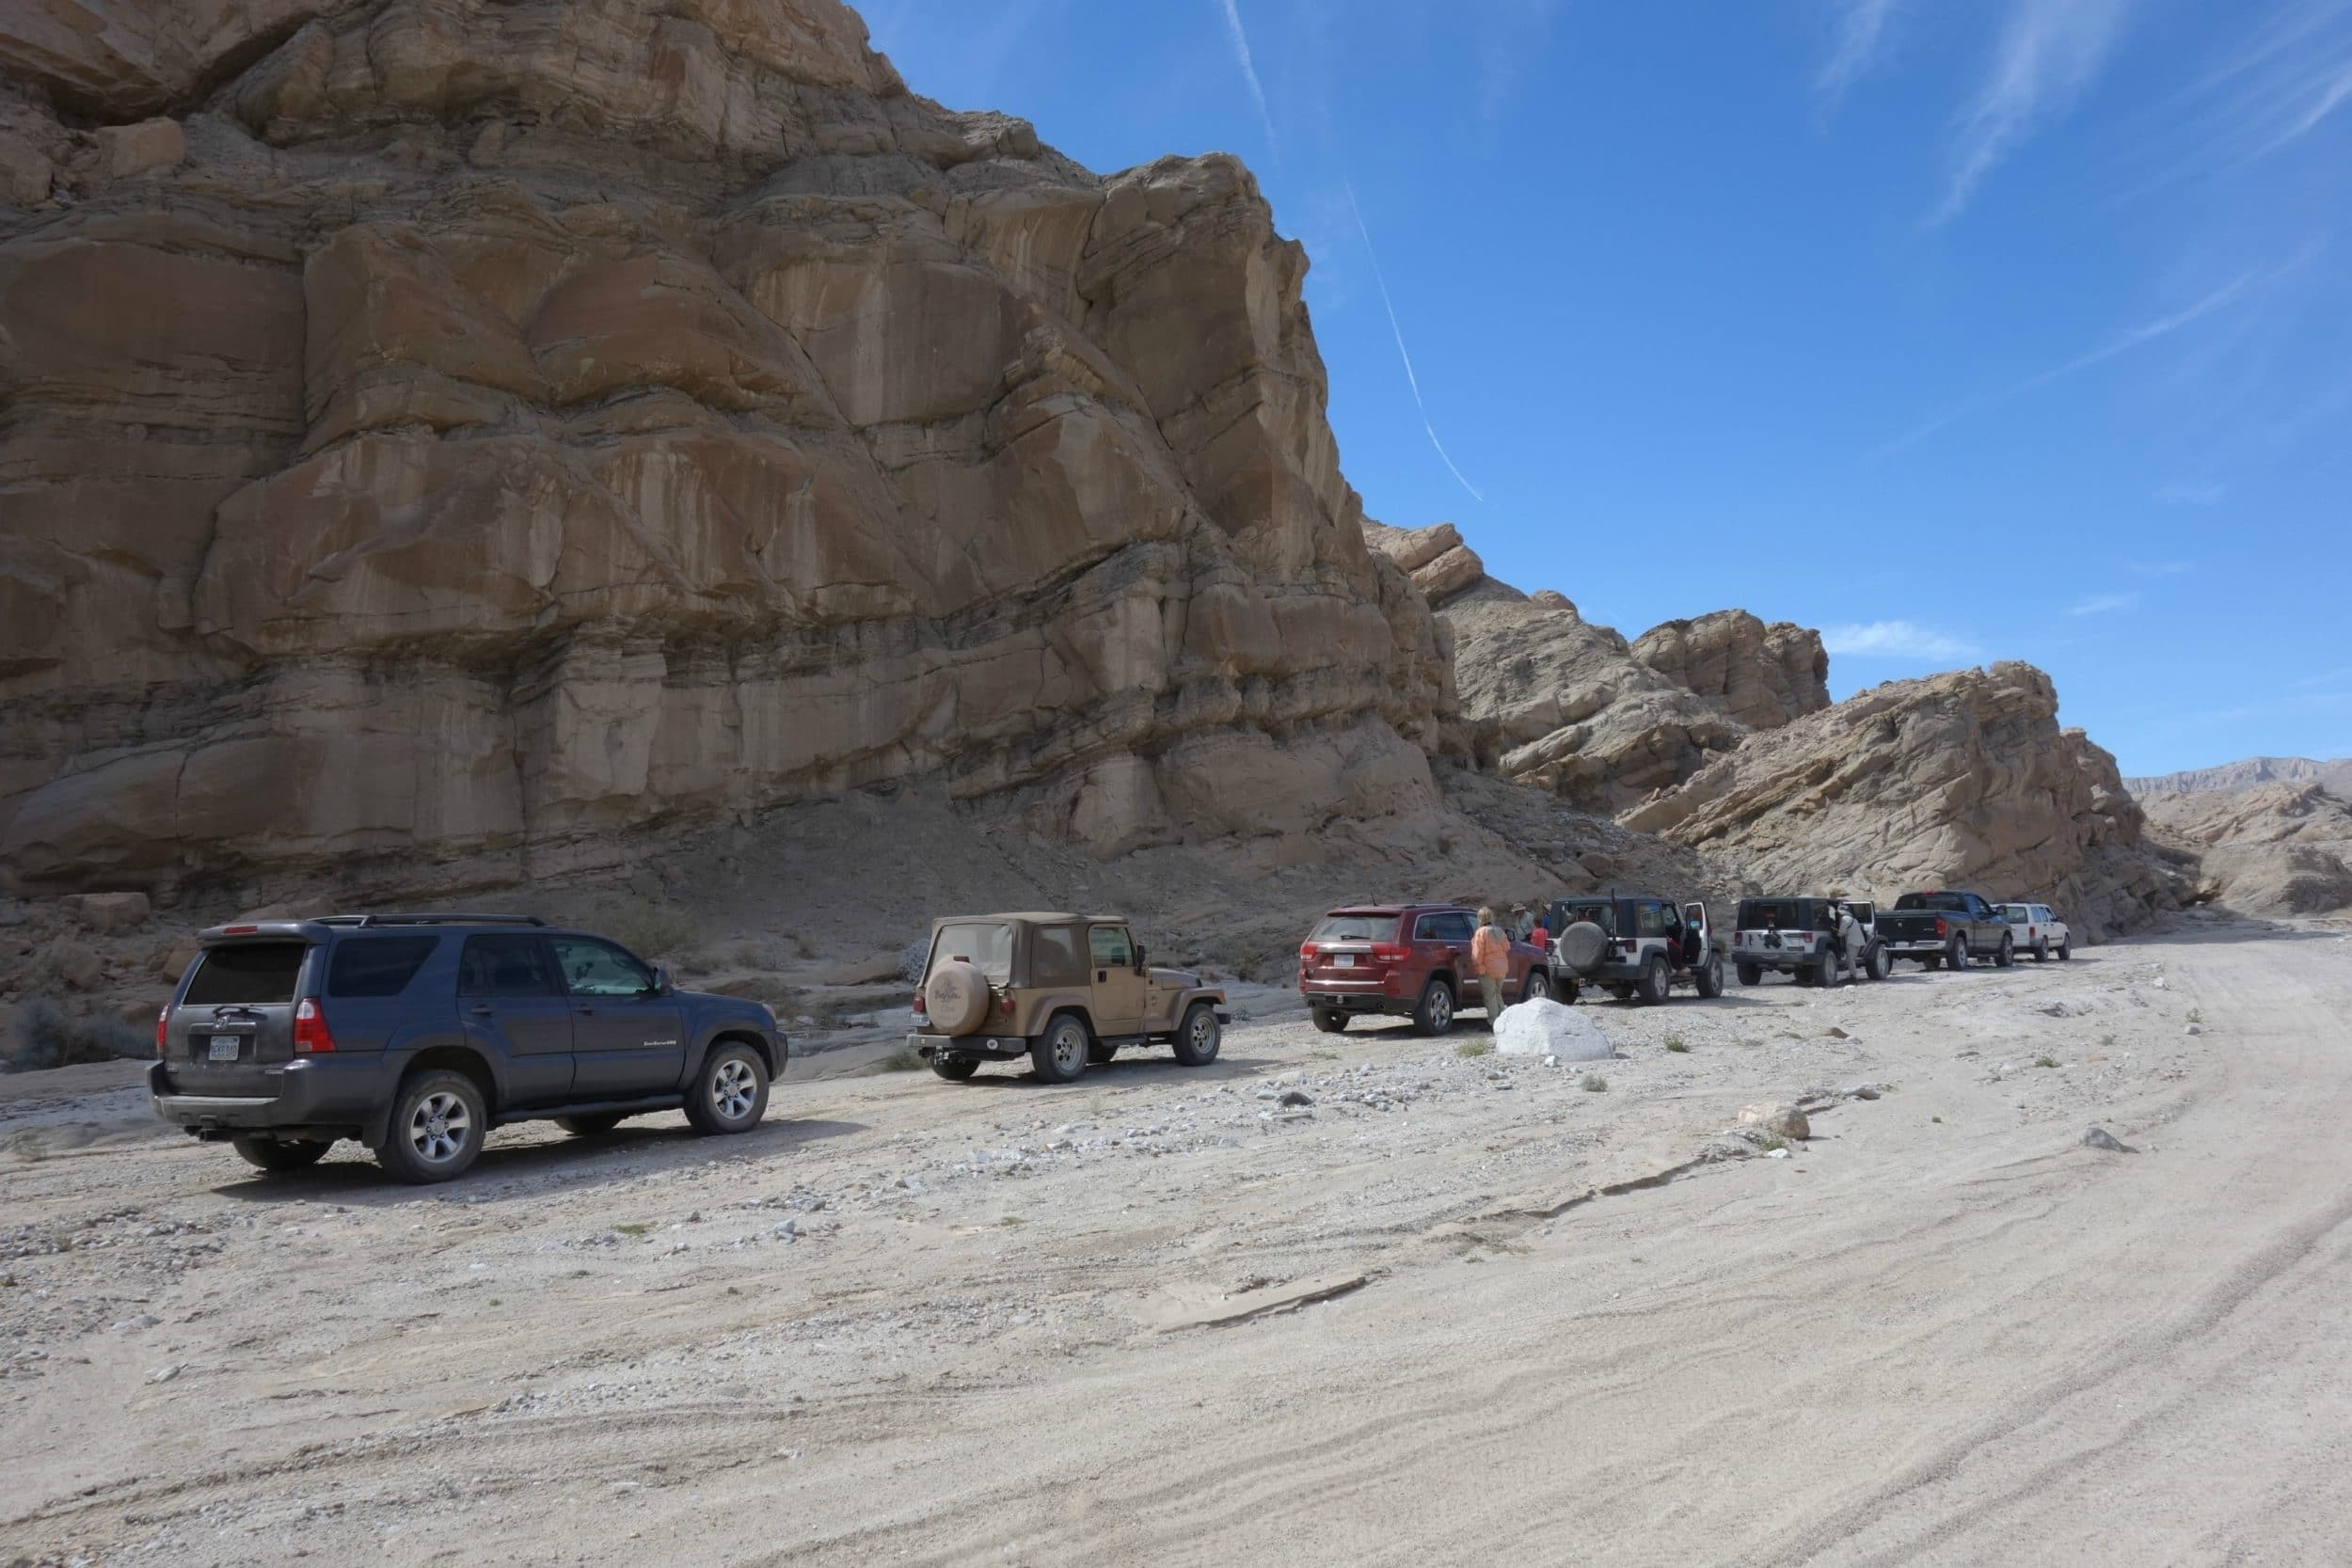 A Line Up Of Cars At Fish Creek In Anza Borrego Desert State Park.